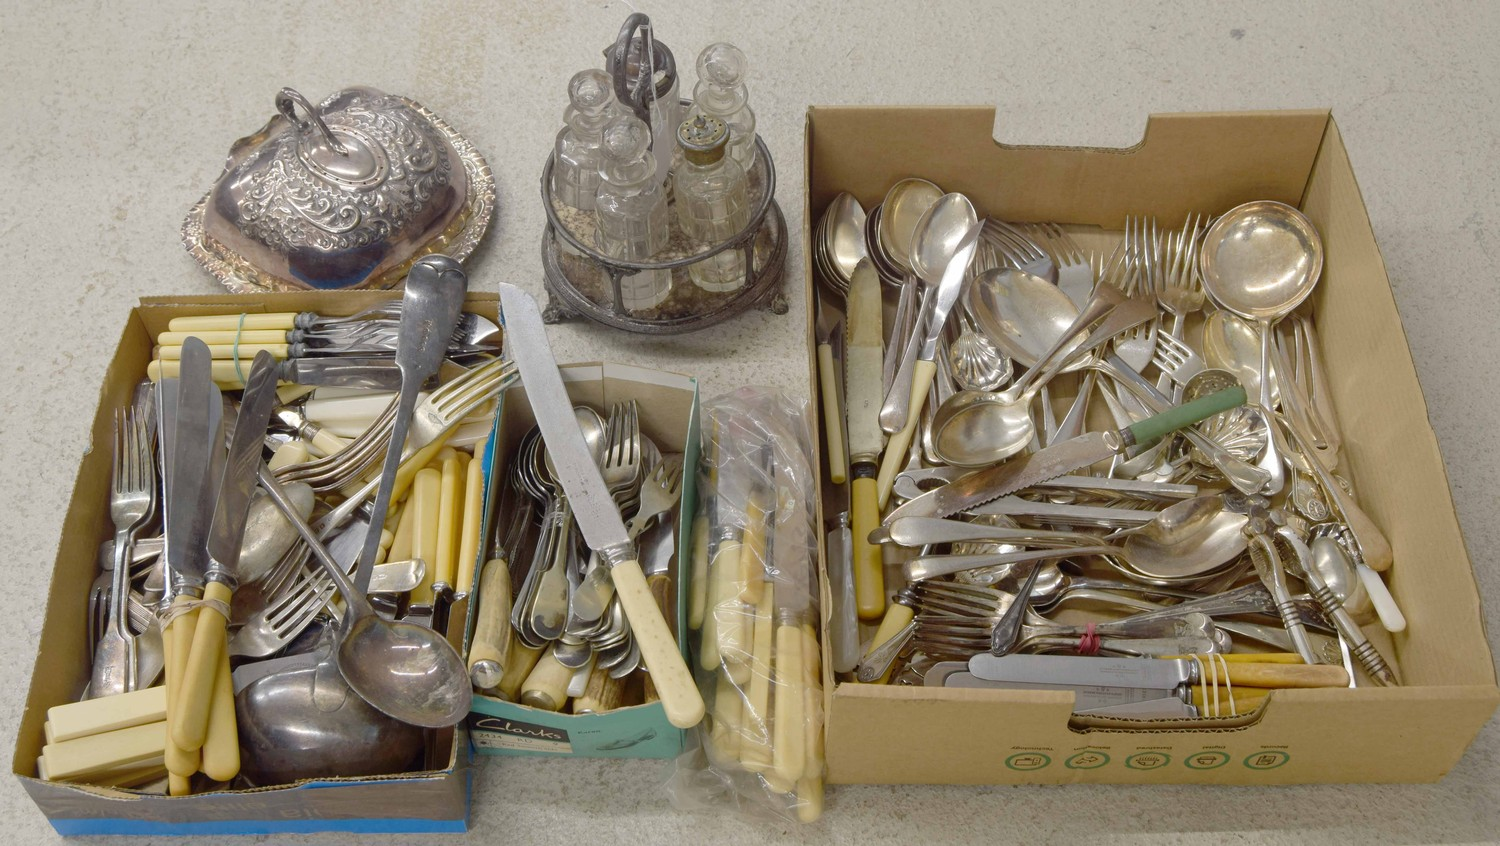 Collection of assorted vintage flatware including stainless and plated; together with a vintage